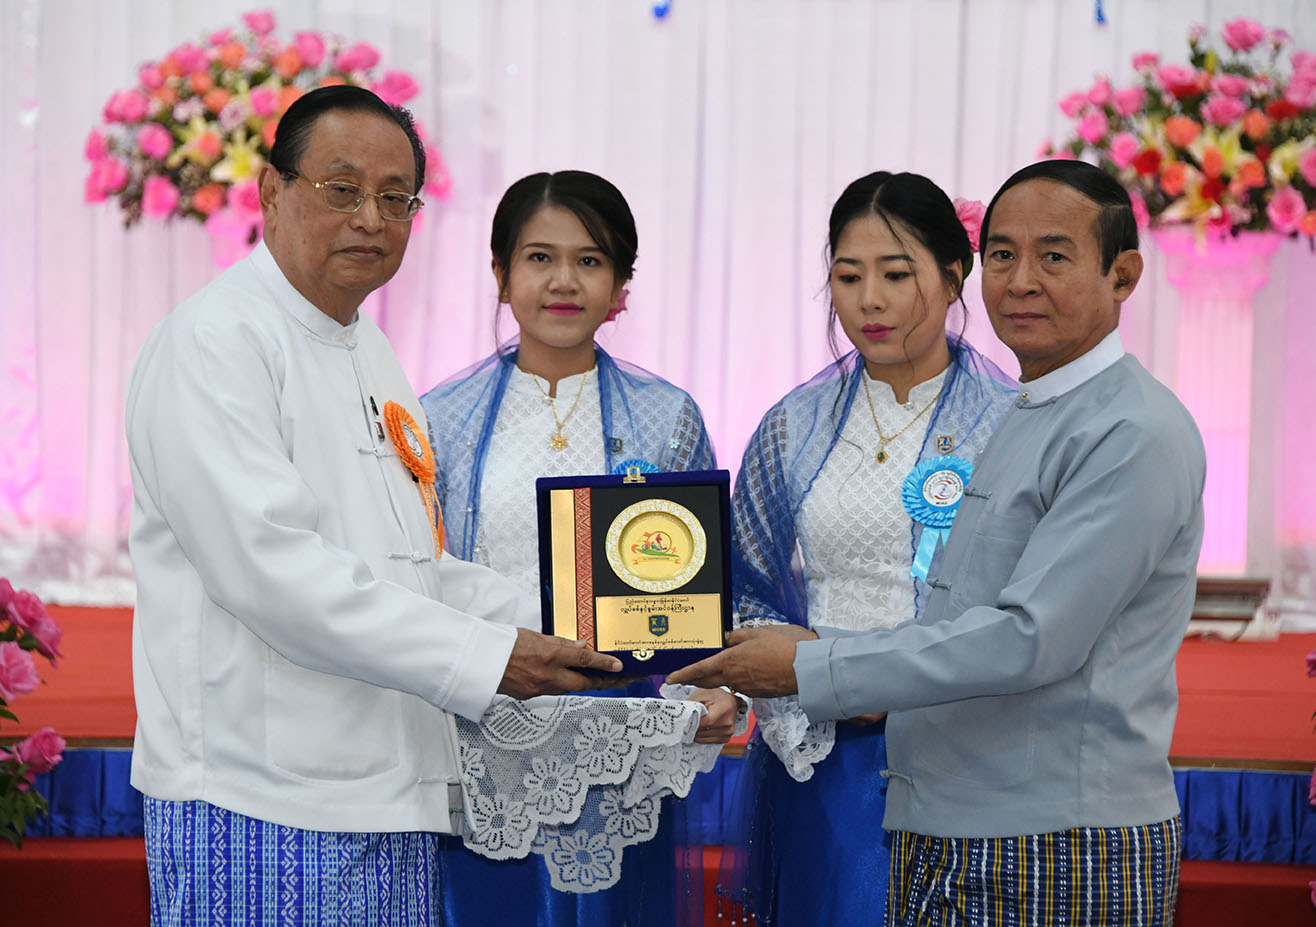 President U Win Myint accepts a gift commemorating the event for the achievement of 50% nationwide electrification from Union Minister U Win Khaing in Nay Pyi Taw. Photo: MNA